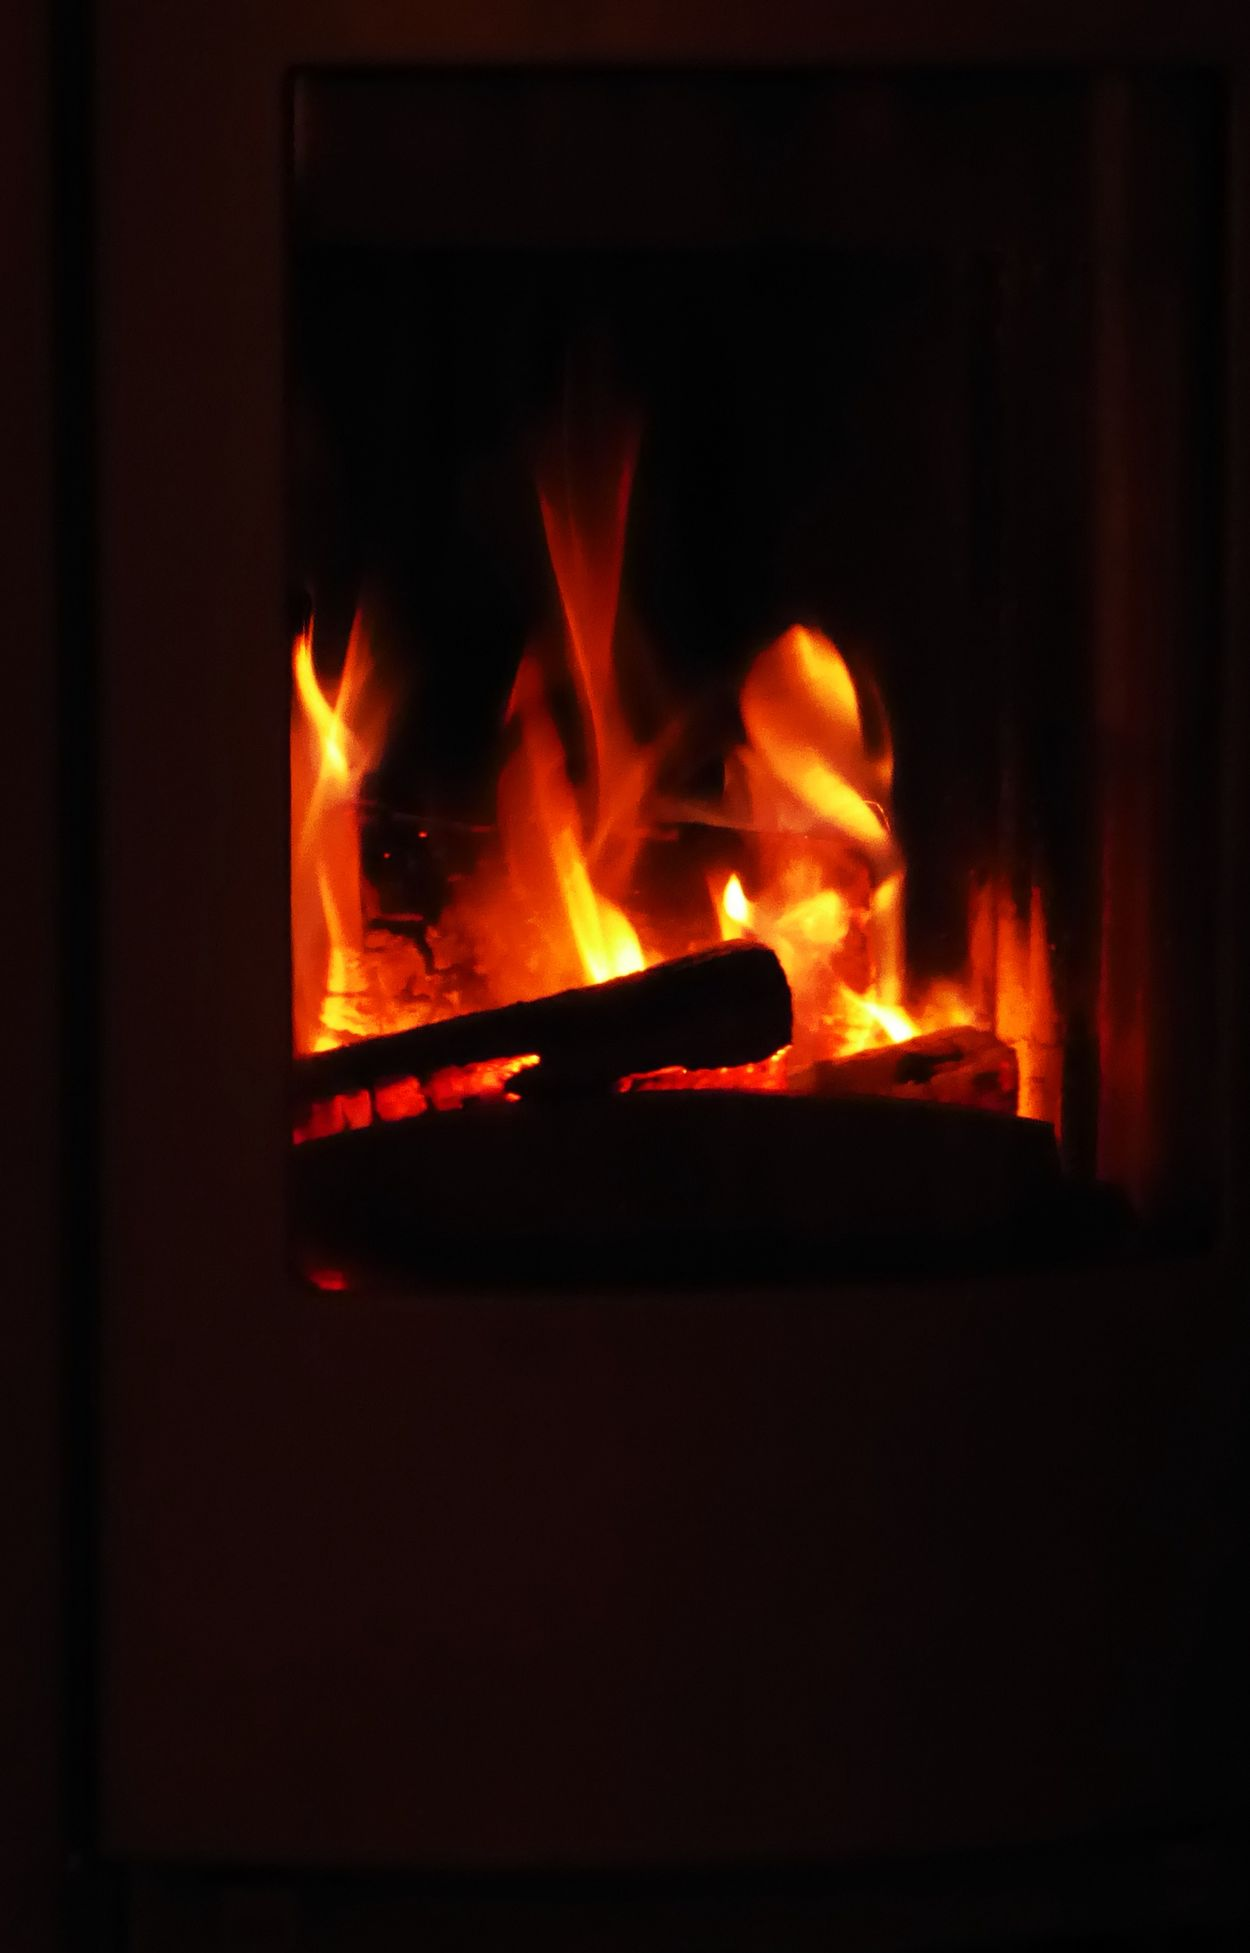 Sitting By The Fireplace Best Things In Life Arent Things Burning Flame Nightshot🌙 Somewhere In Austria😍 Every Day Is A Gift Enjoing Life Do What You Love And Love What You Do❤ Looking At The Fire And It Feels Just Good Beauty In December😍 For My Friends 😍😘🎁 My Year My View Simple Beauty Tranquillity Beauty